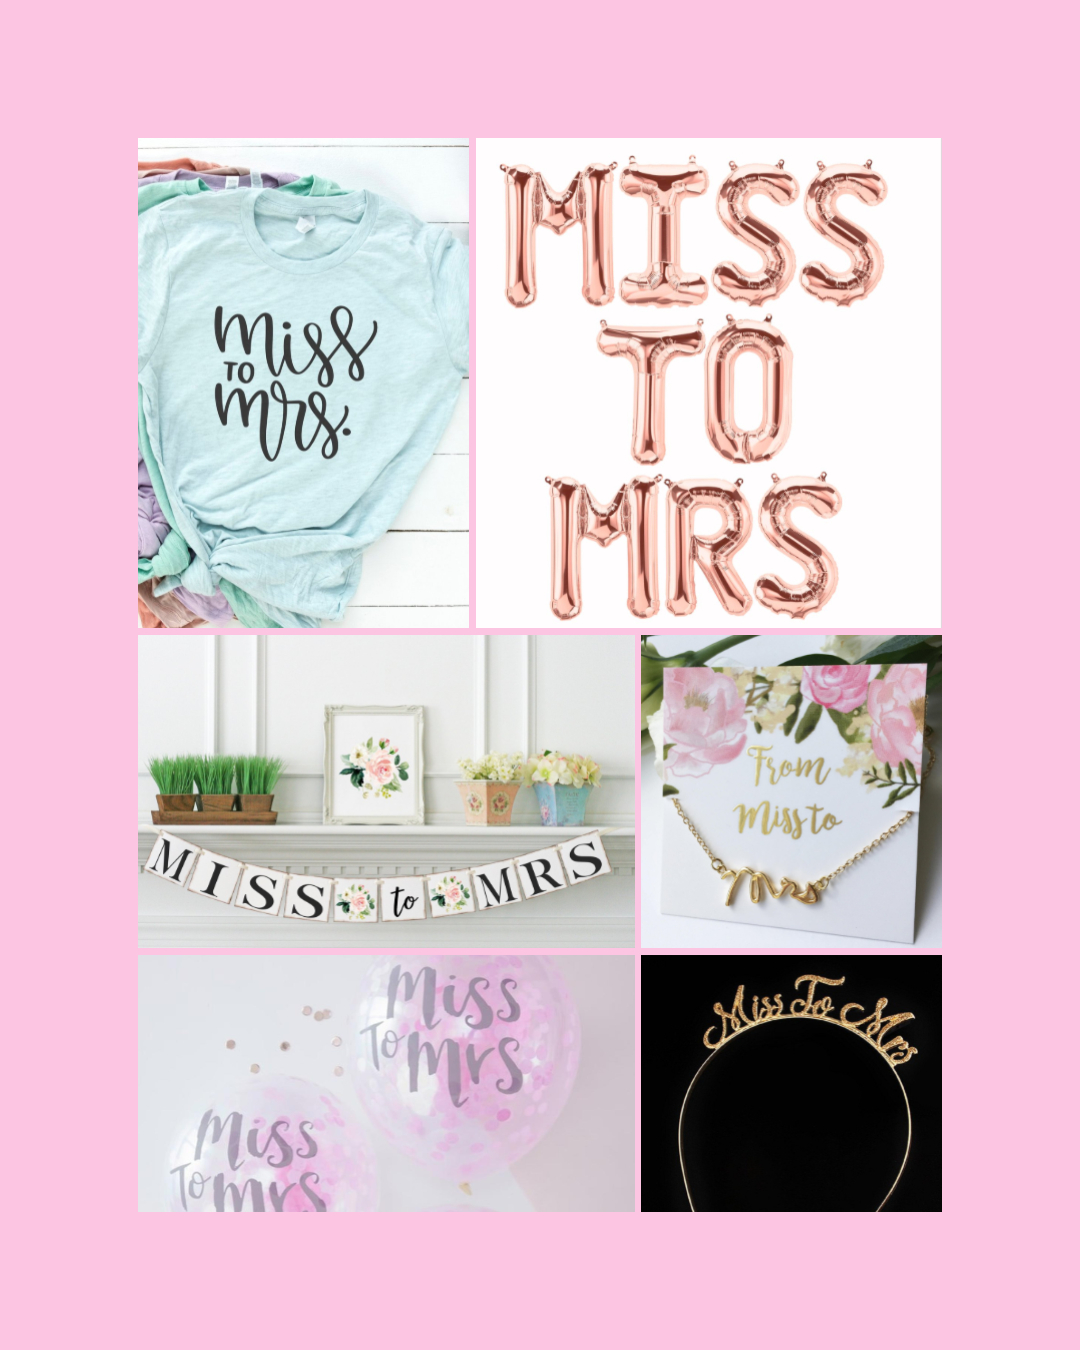 miss to mrs bachelorette supplies and decorations